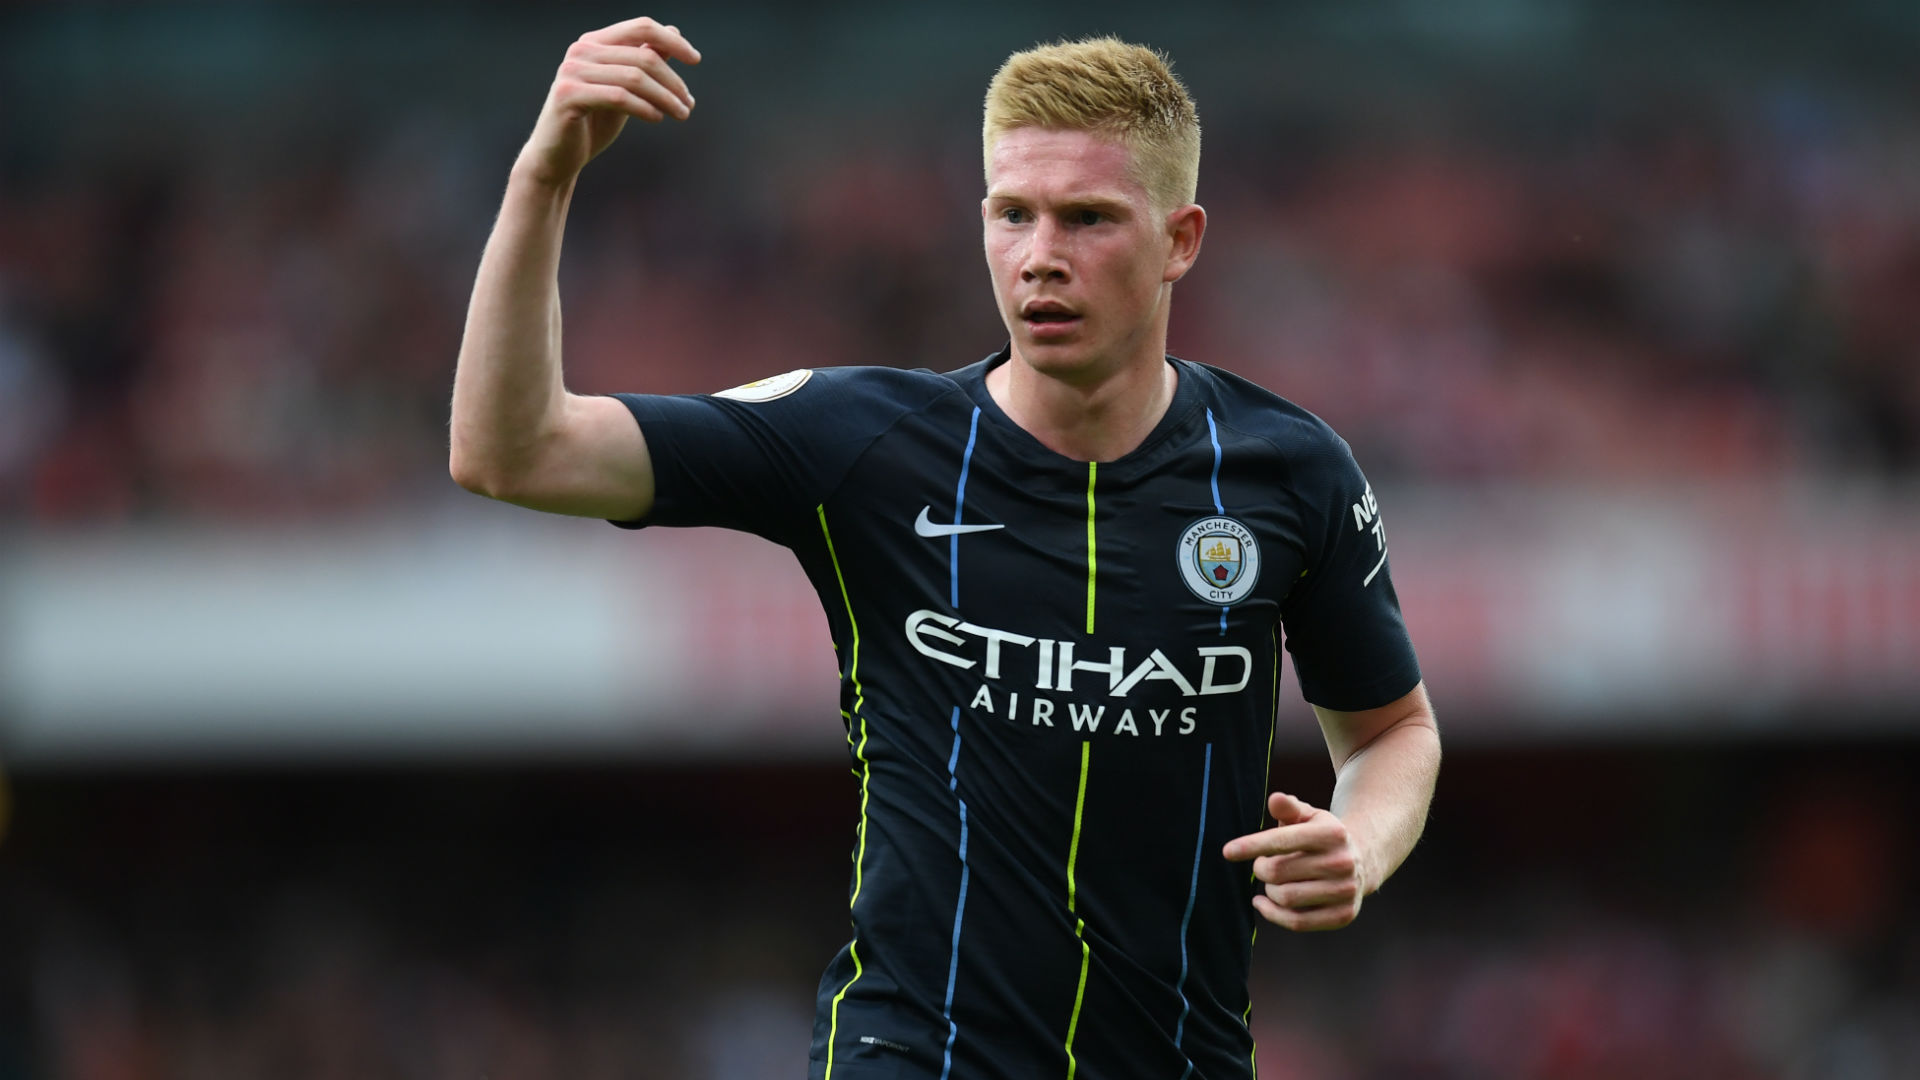 Kevin De Bruyne could return for Manchester City vs Liverpool